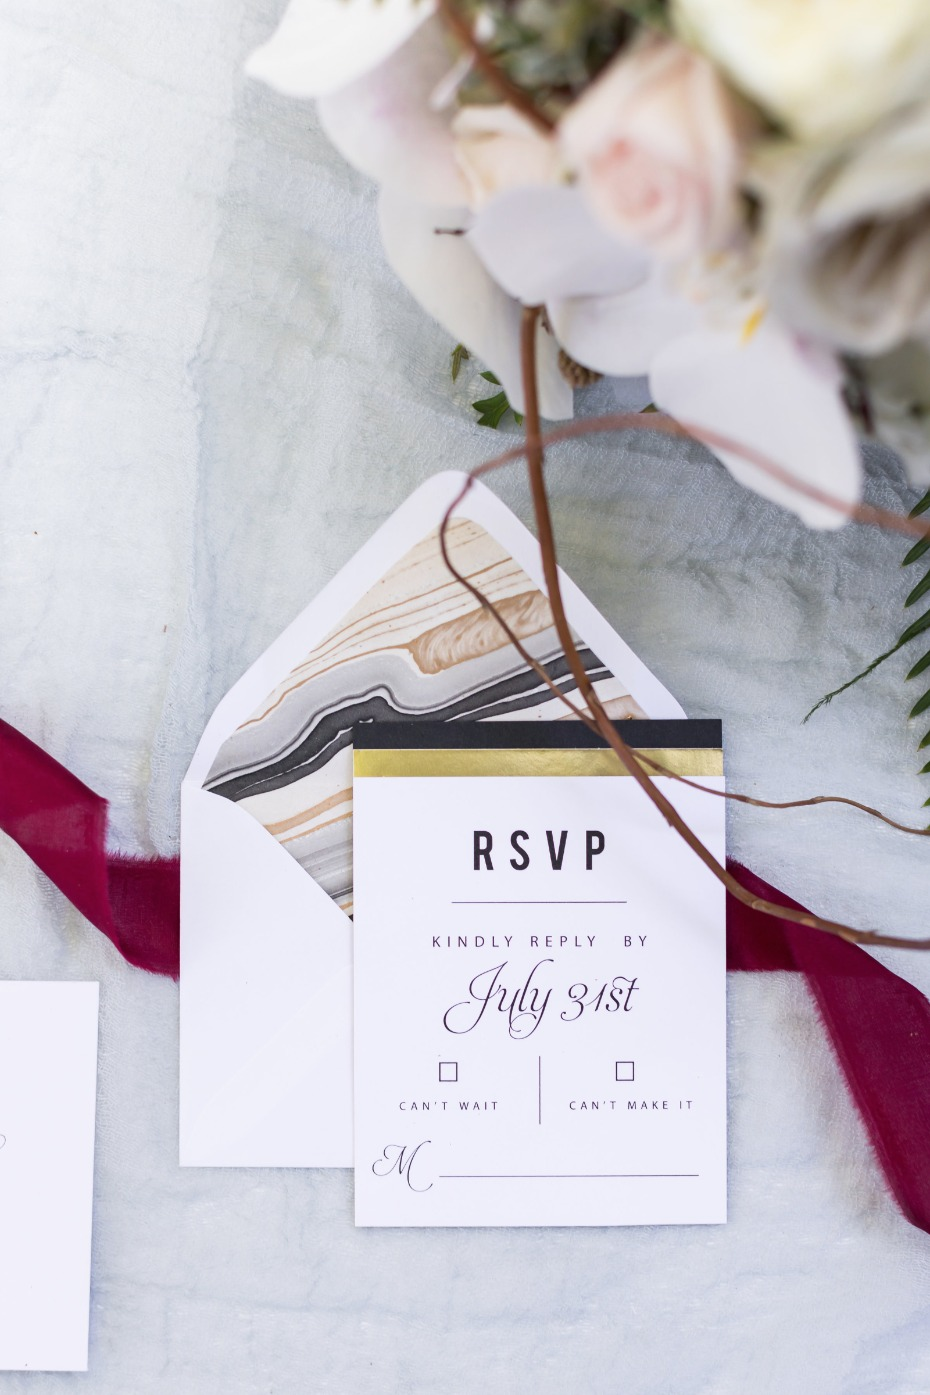 RSVP for your wedding